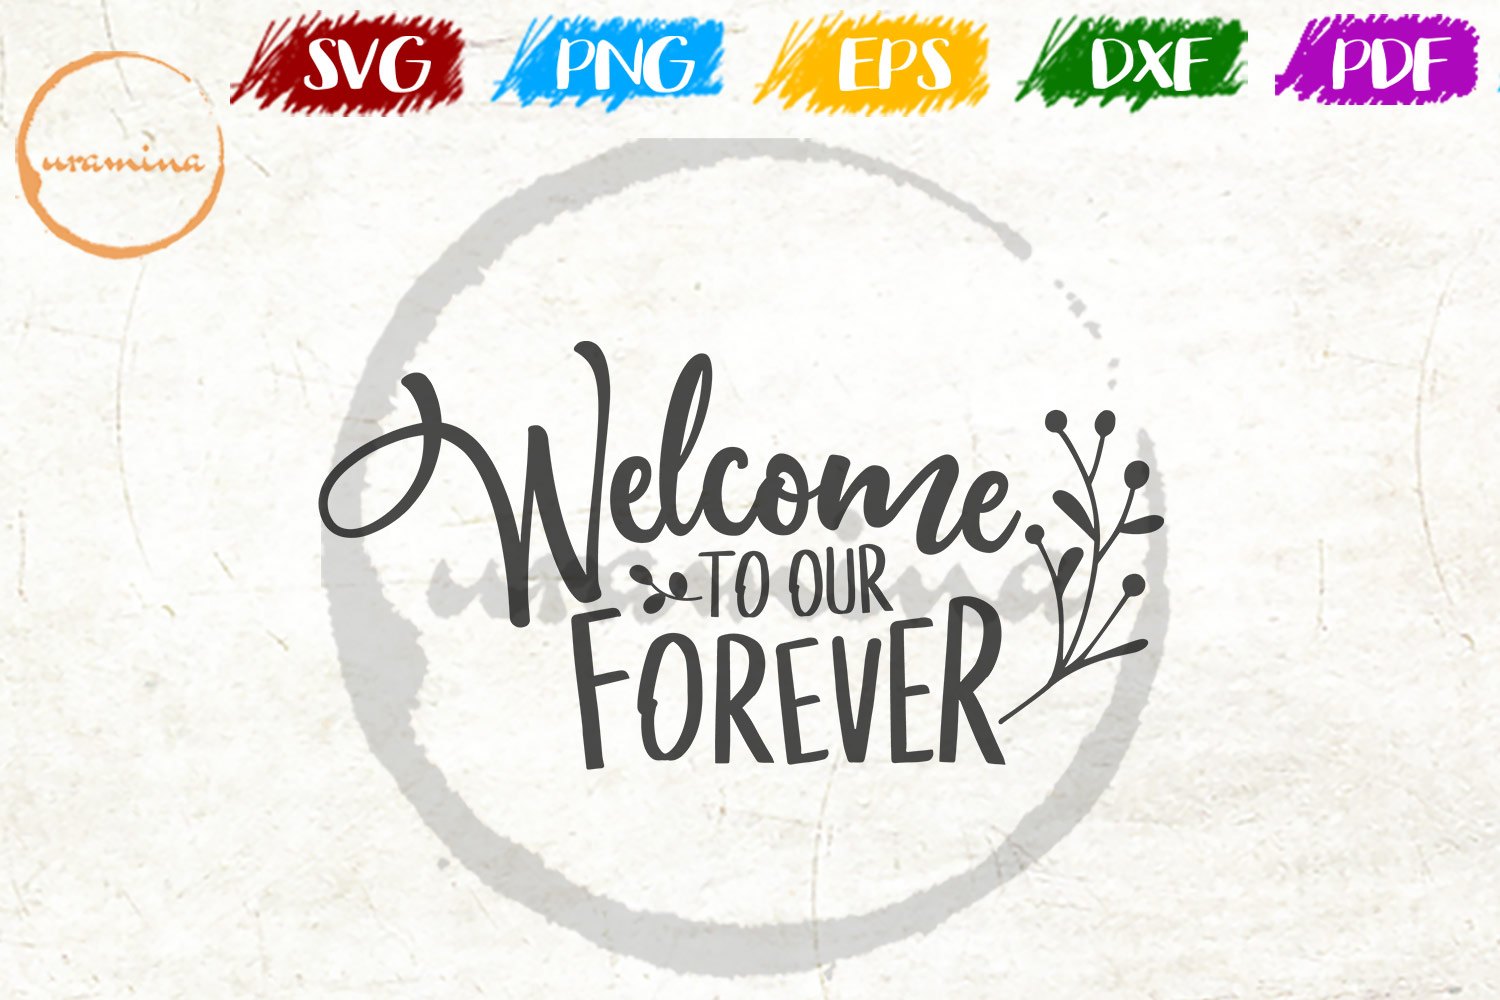 Download Free Welcome To Our Forever Graphic By Uramina Creative Fabrica for Cricut Explore, Silhouette and other cutting machines.